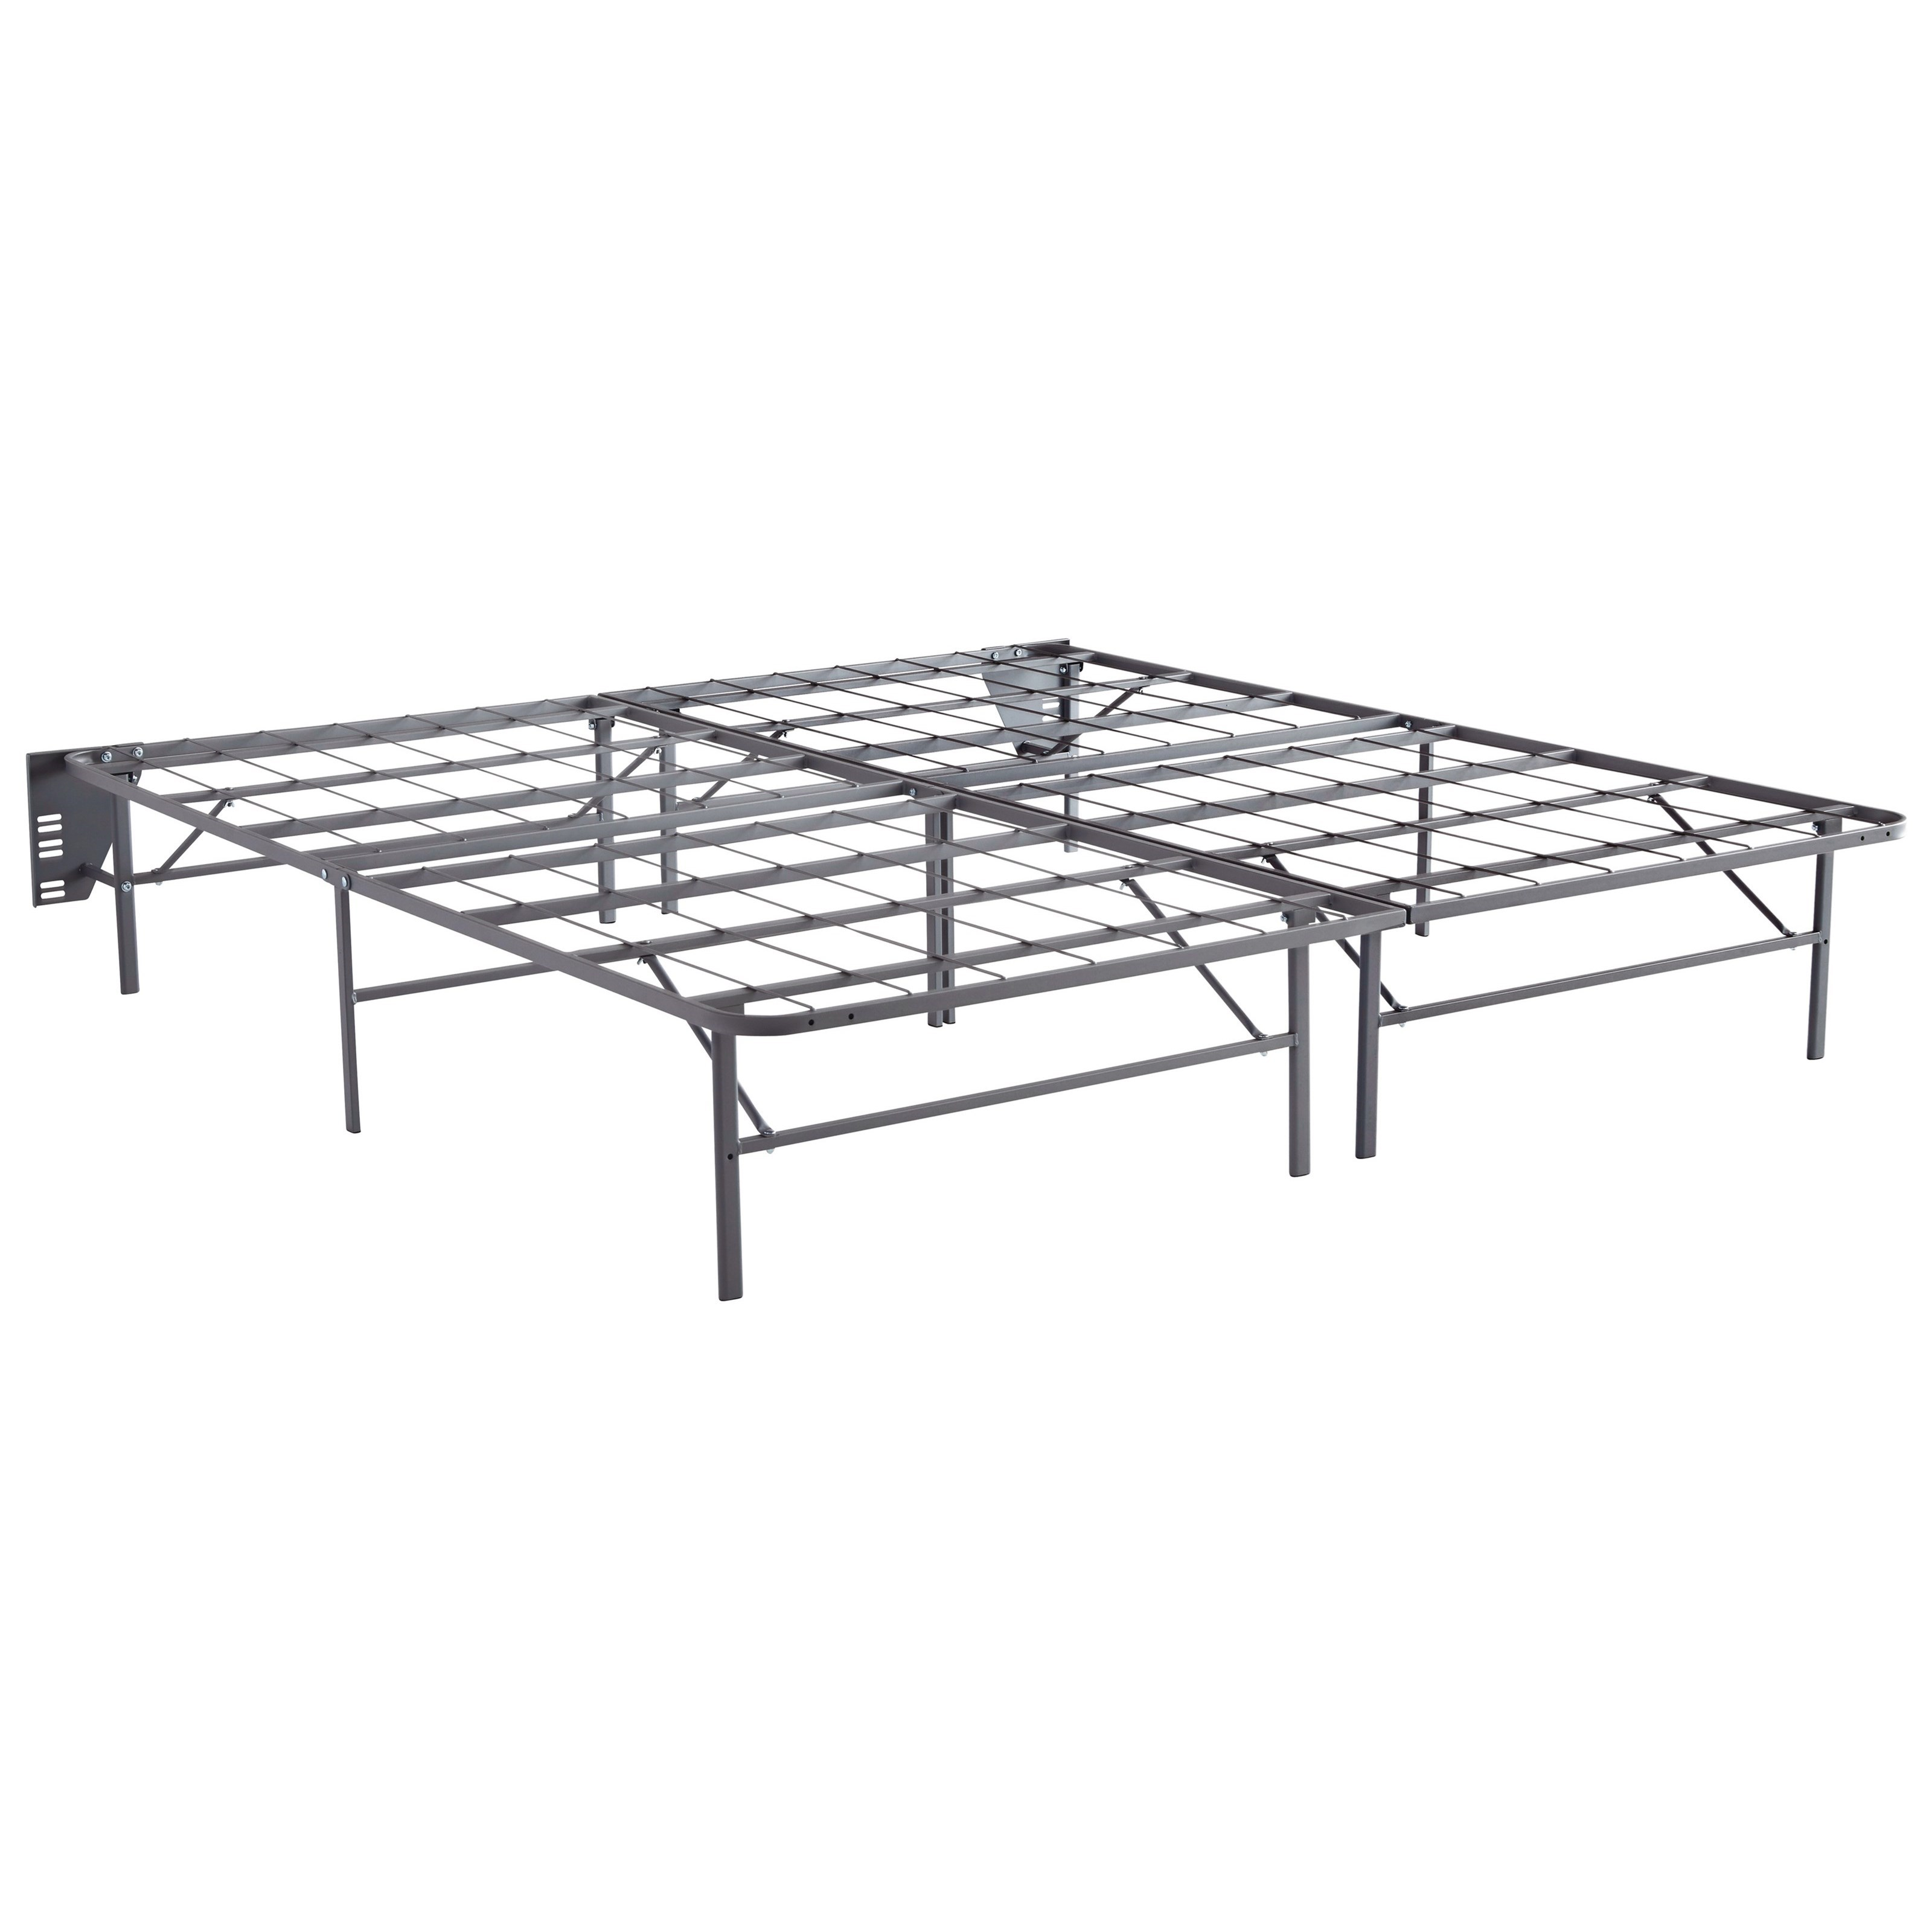 Sierra Sleep M91x Better Than A Boxspring King Frame No Box Spring Needed Rooms For